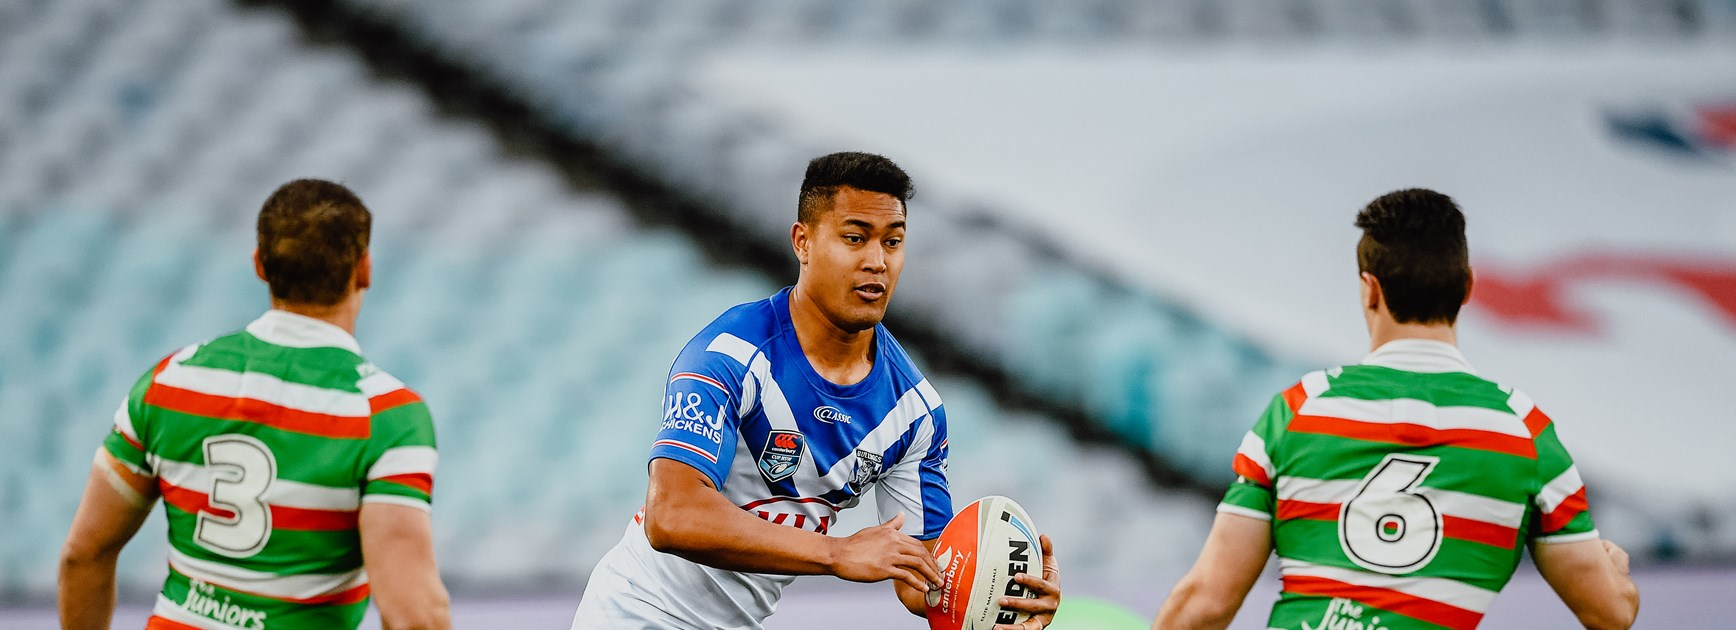 NSWRL confirm Canterbury Cup & Jersey Flegg draws for 2020